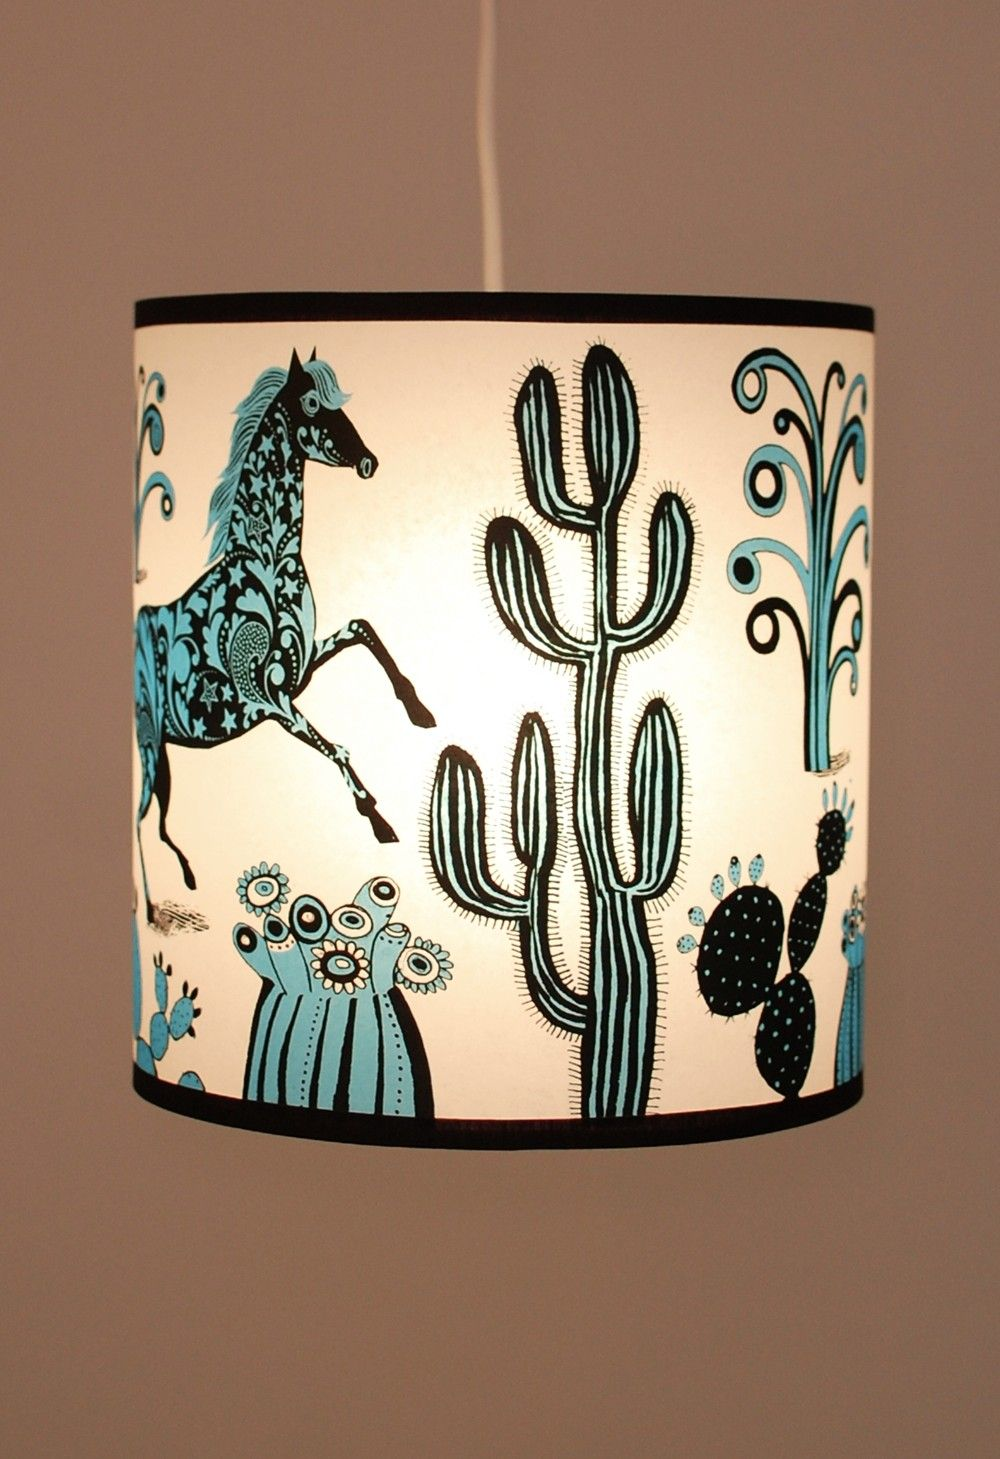 Blue horse and cacti lampshade by lush designs radiance light blue horse and cacti lampshade by lush designs radiance aloadofball Image collections